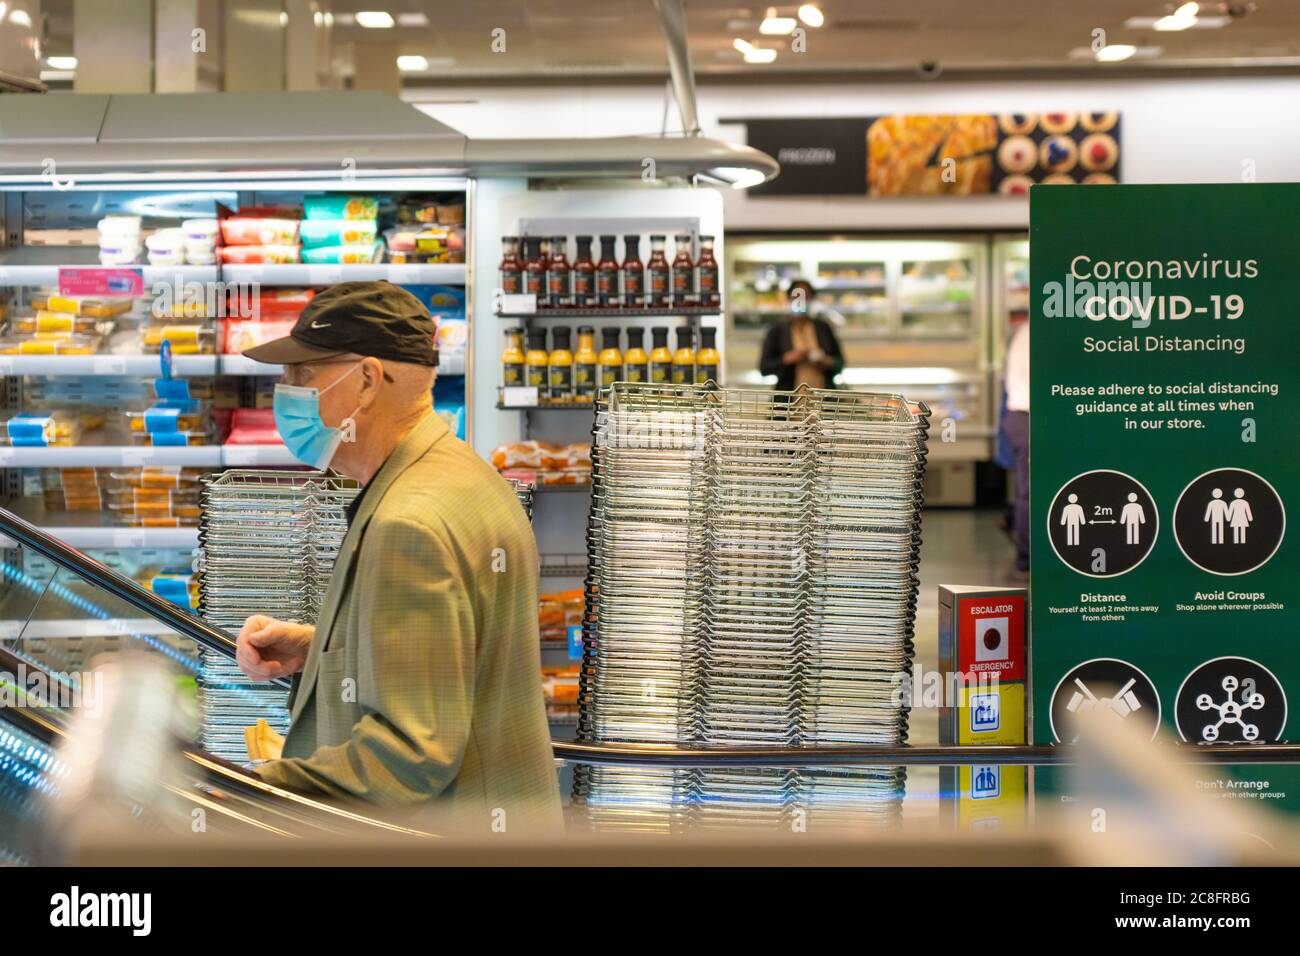 London Uk Friday 24 July 2020 Shoppers Wearing Protective Masks In Ealing On The Day Face Coverings Became Mandatory In Shops In The Uk Photo Roger Garfield Alamy Live News Stock Photo Alamy